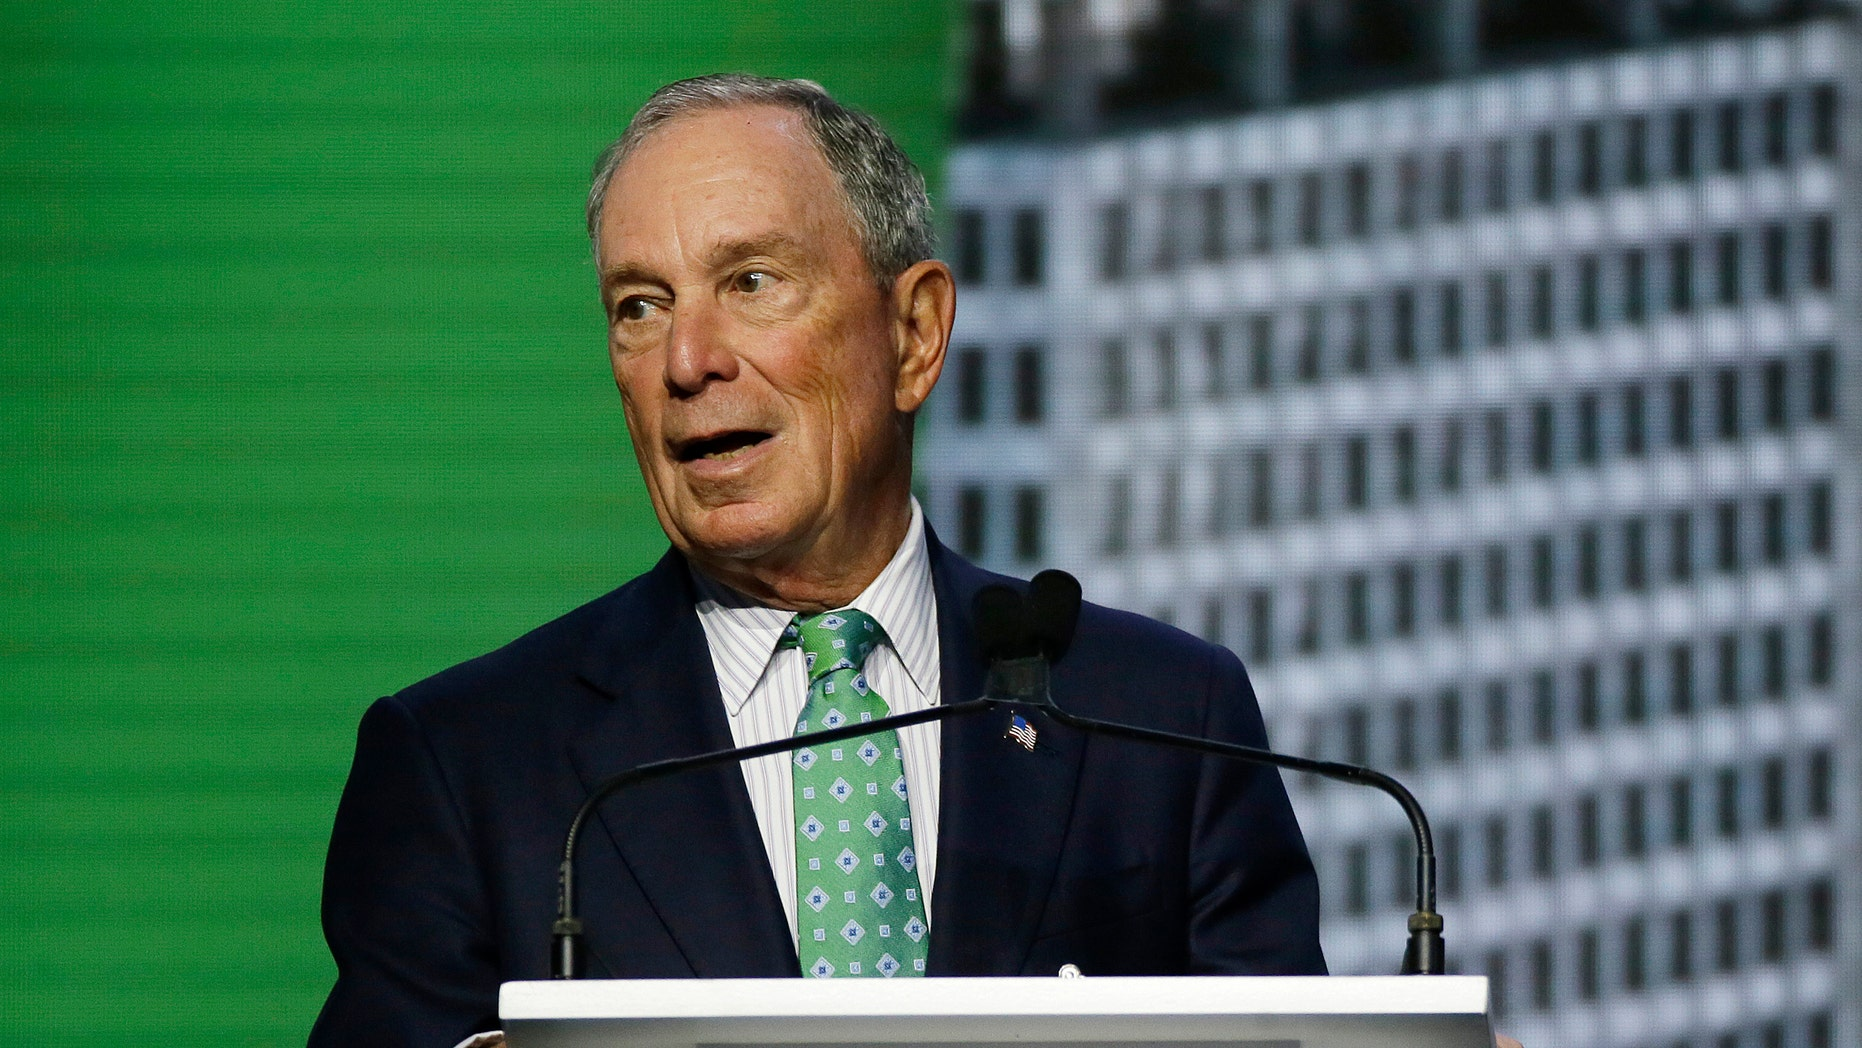 Former New York City Mayor Michael Bloomberg has re-registered as a Democrat amid rumors he's running for president. (AP Photo/Eric Risberg)